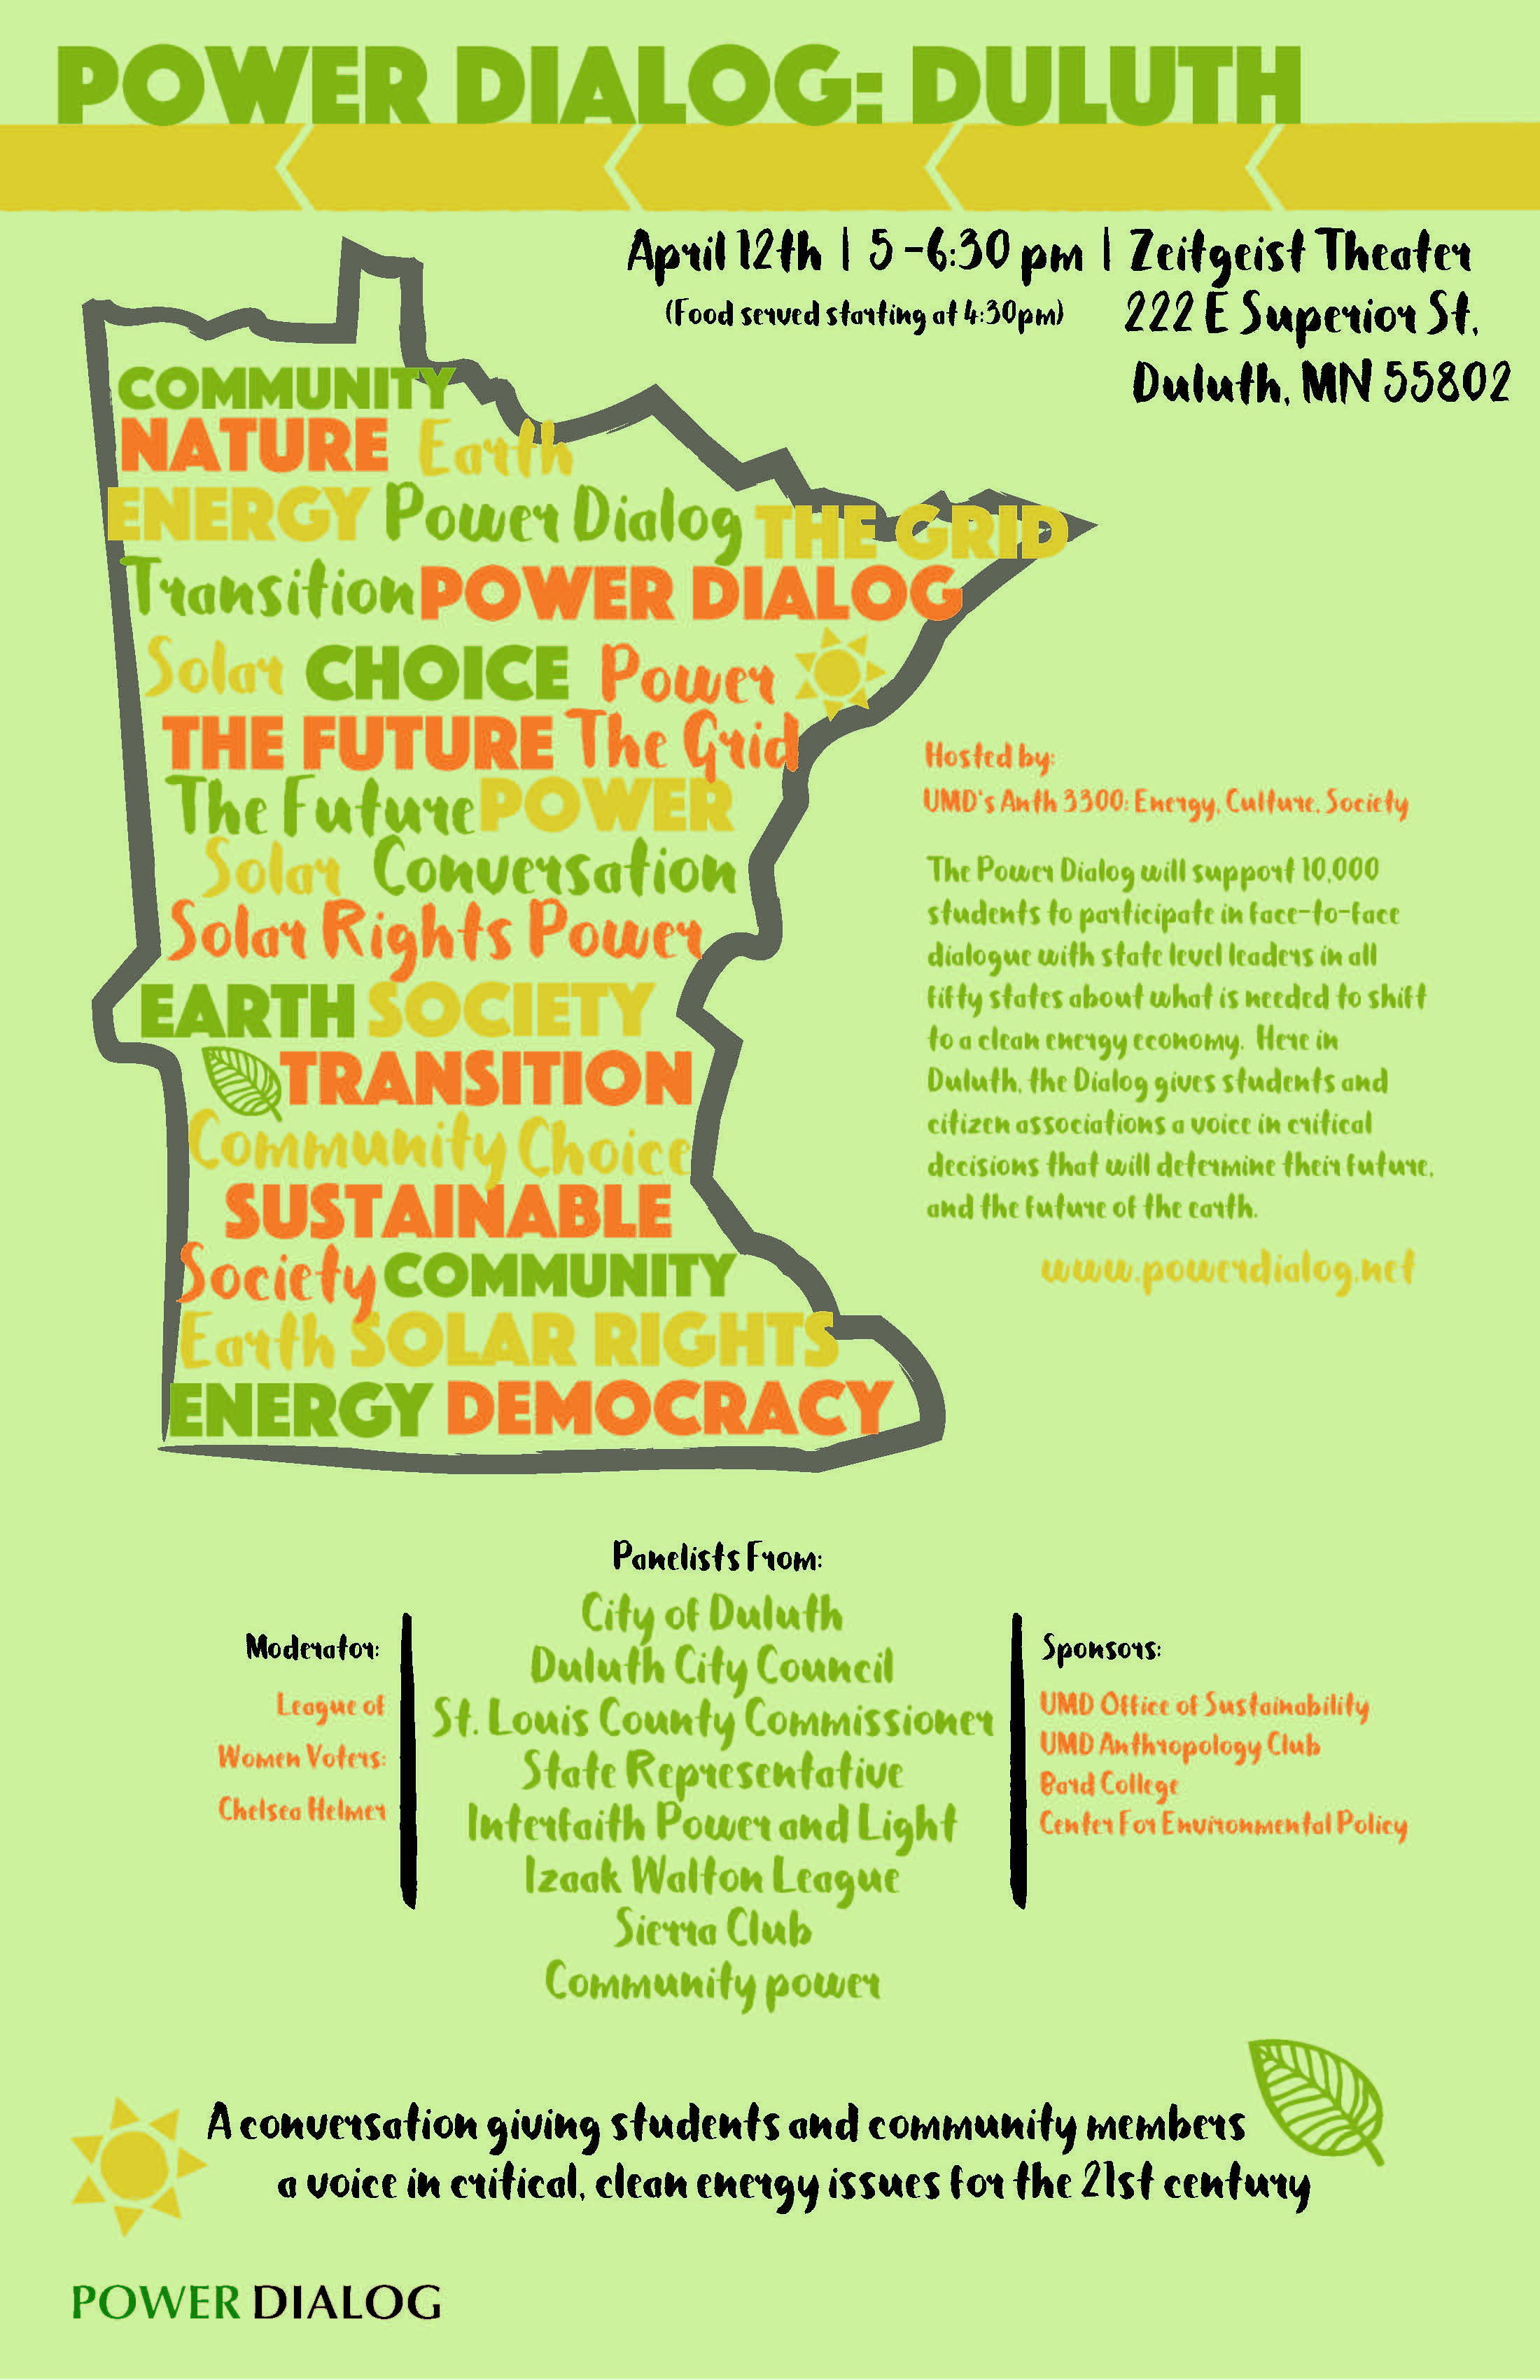 Duluth Power Dialog Poster